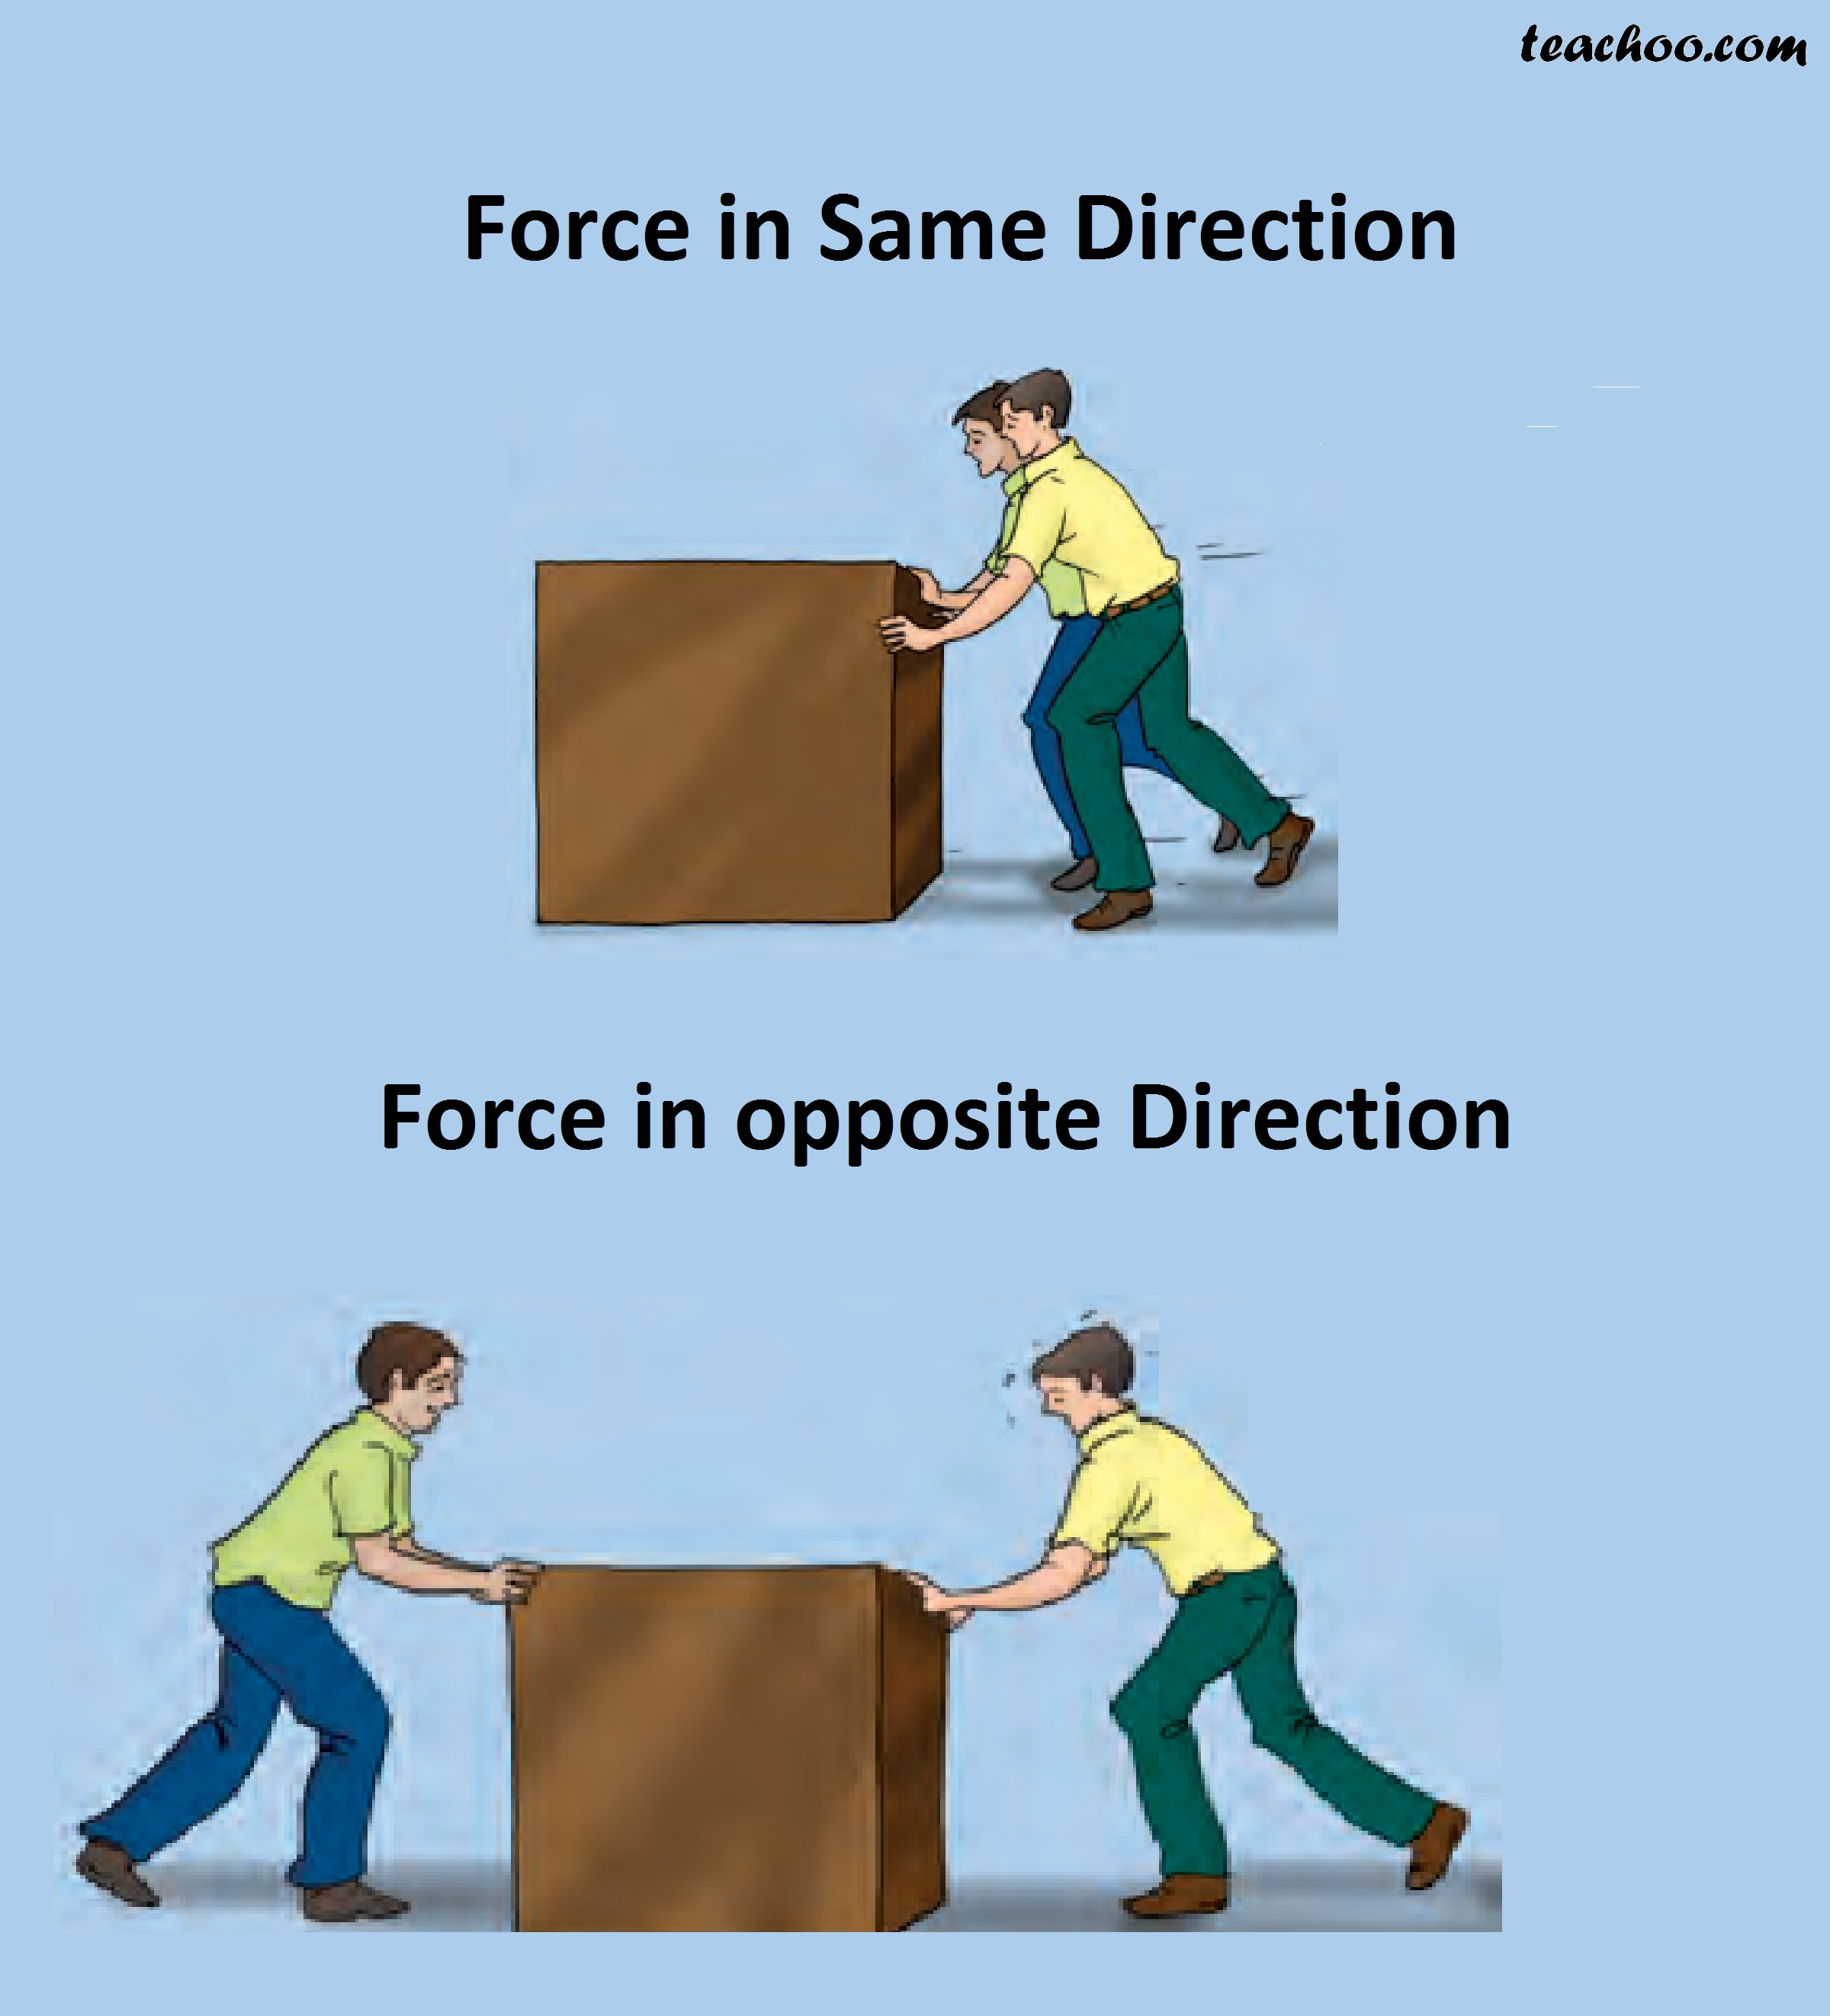 force in Same Direction.jpg